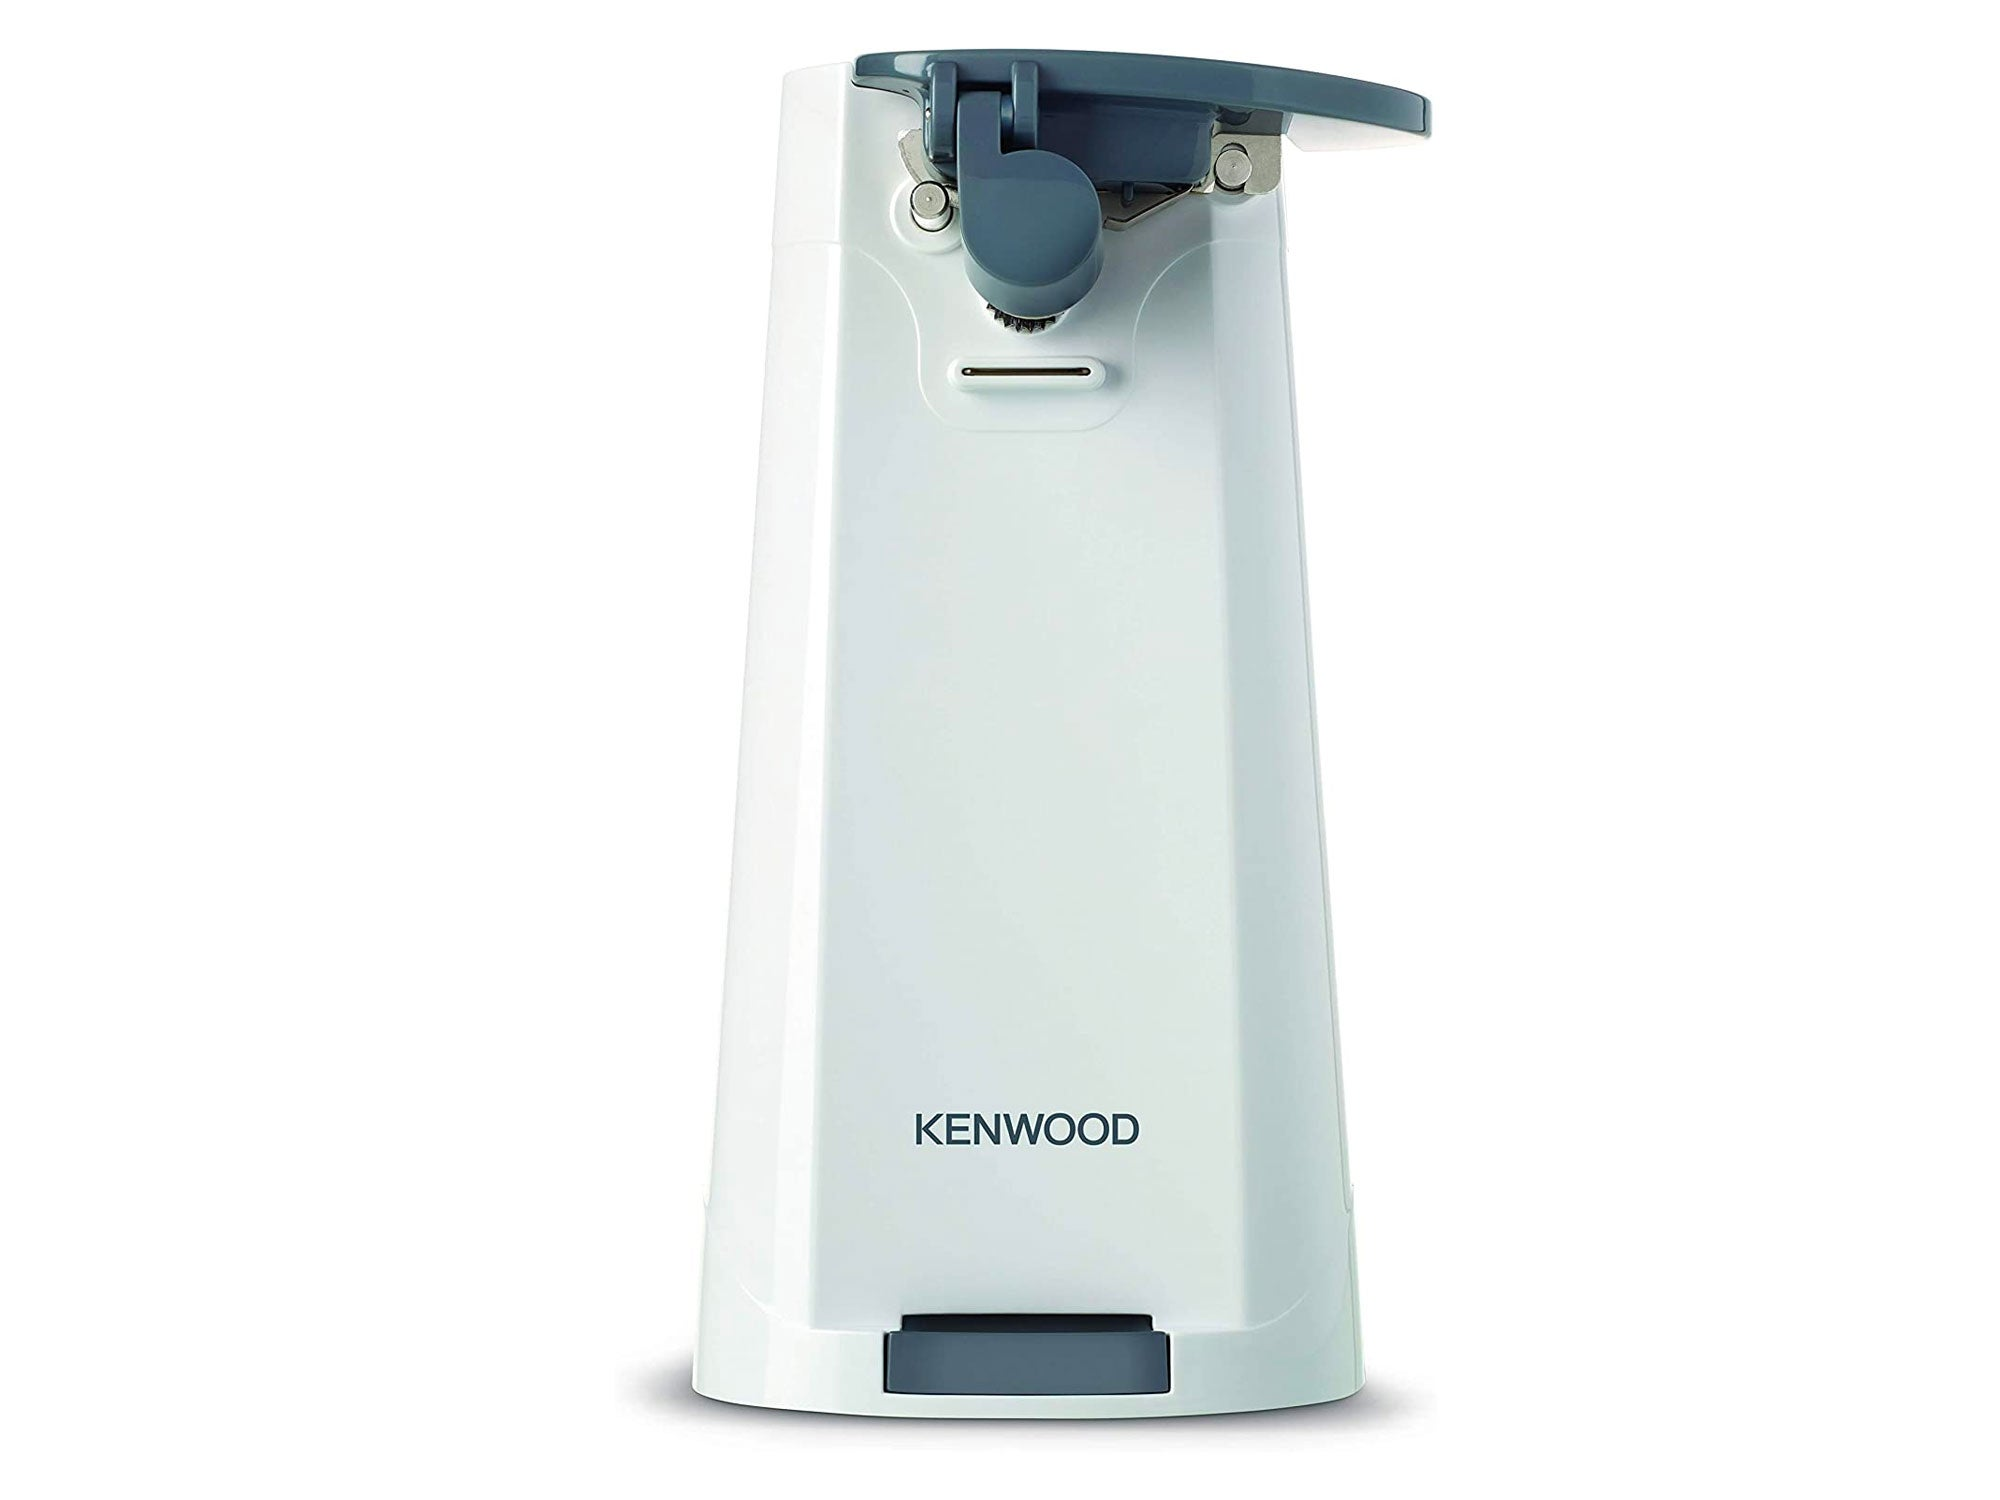 Kenwood Electric Can Opener, Brilliant White